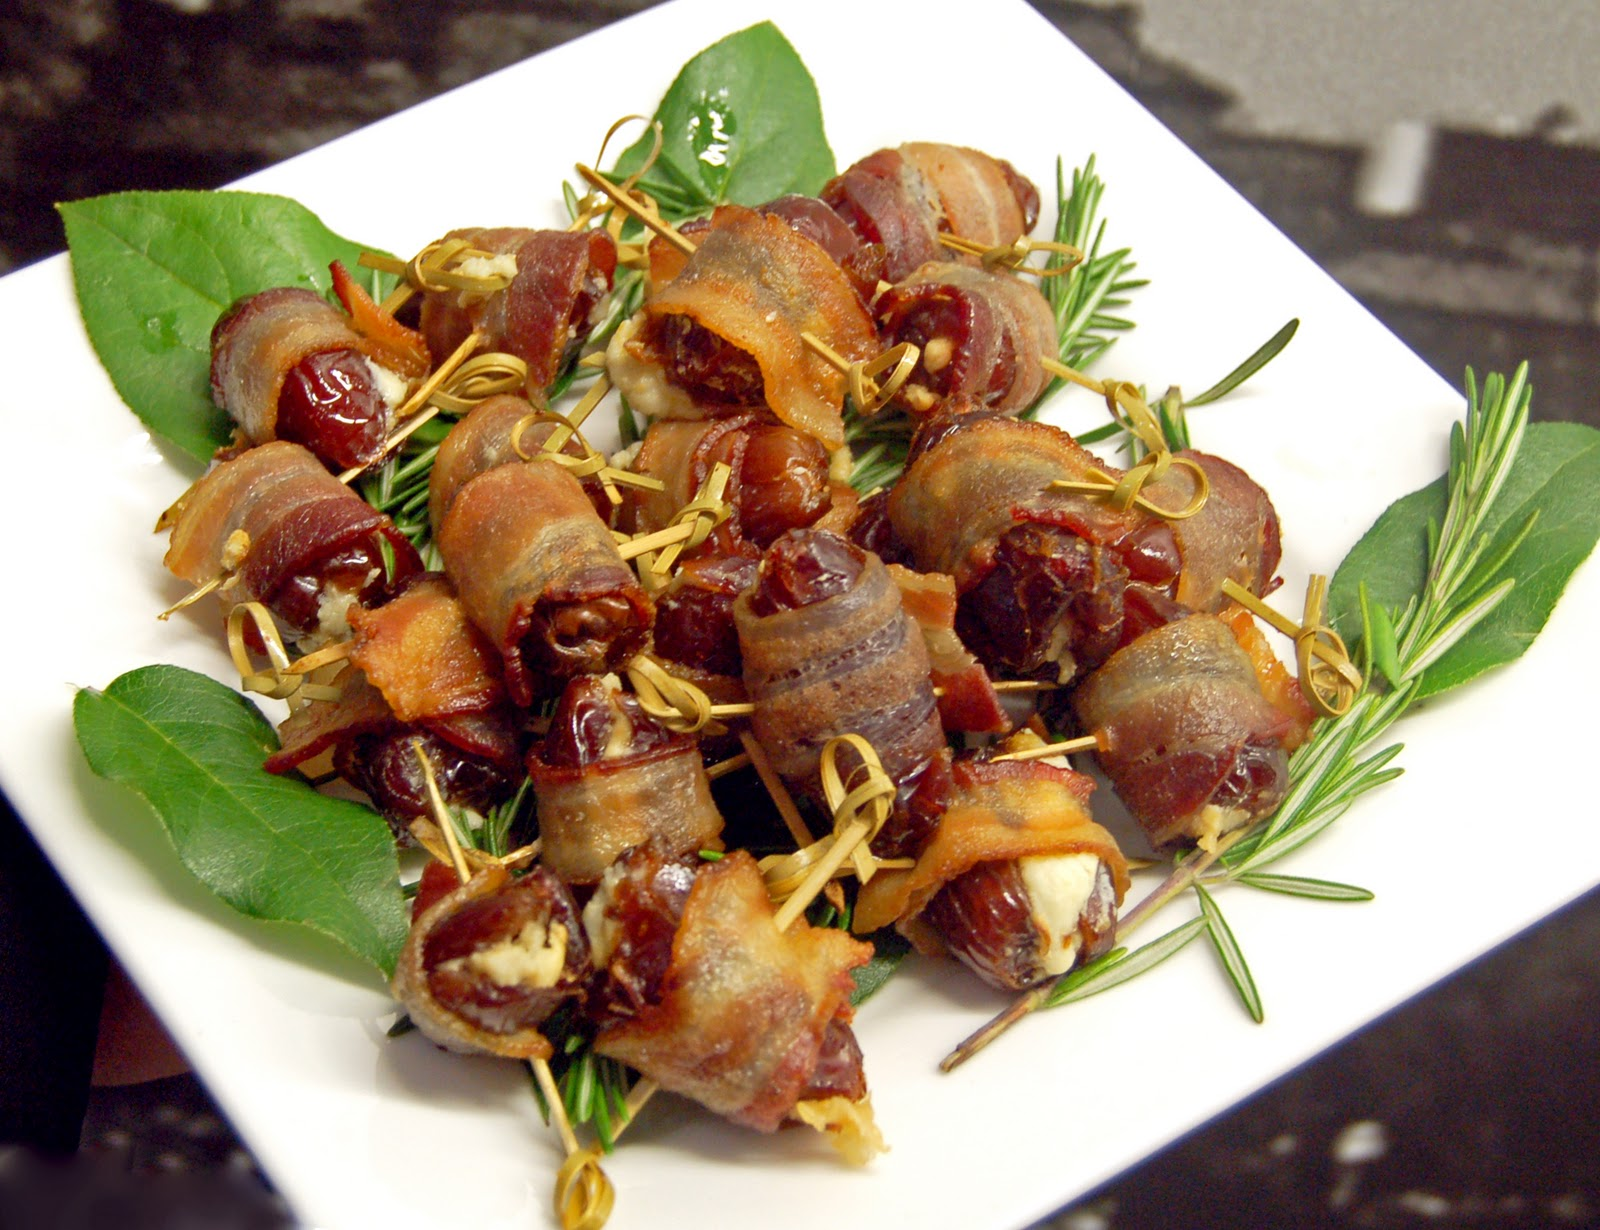 Bacon wrapped dates paleo in Perth